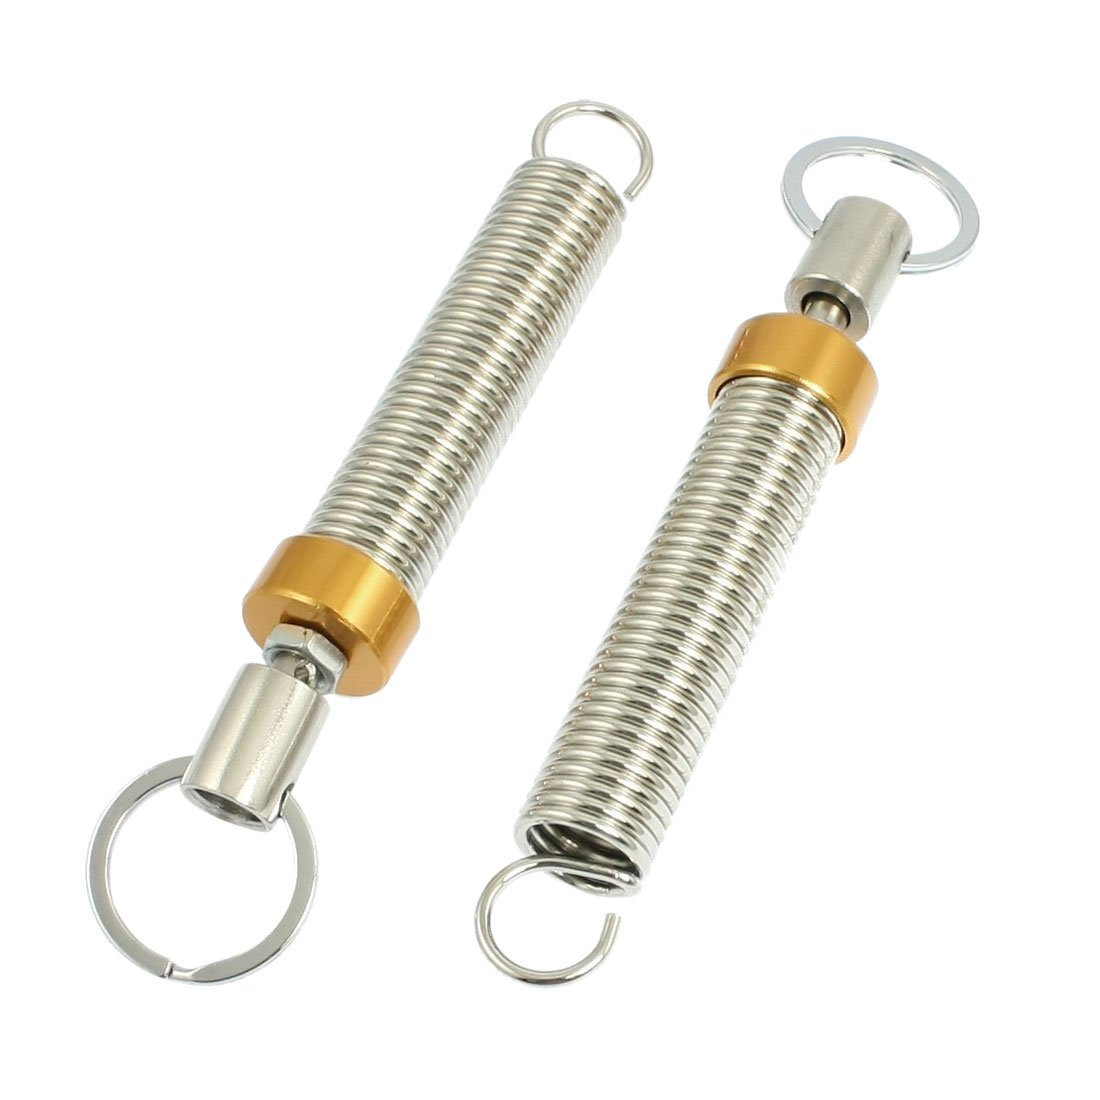 Trunk Lid Lifting Spring Device - SODIAL(R) 2 x Adjustable Automatic Trunk Lid Lifting Spring Device Gold Tone for Car Auto LEPACA2855